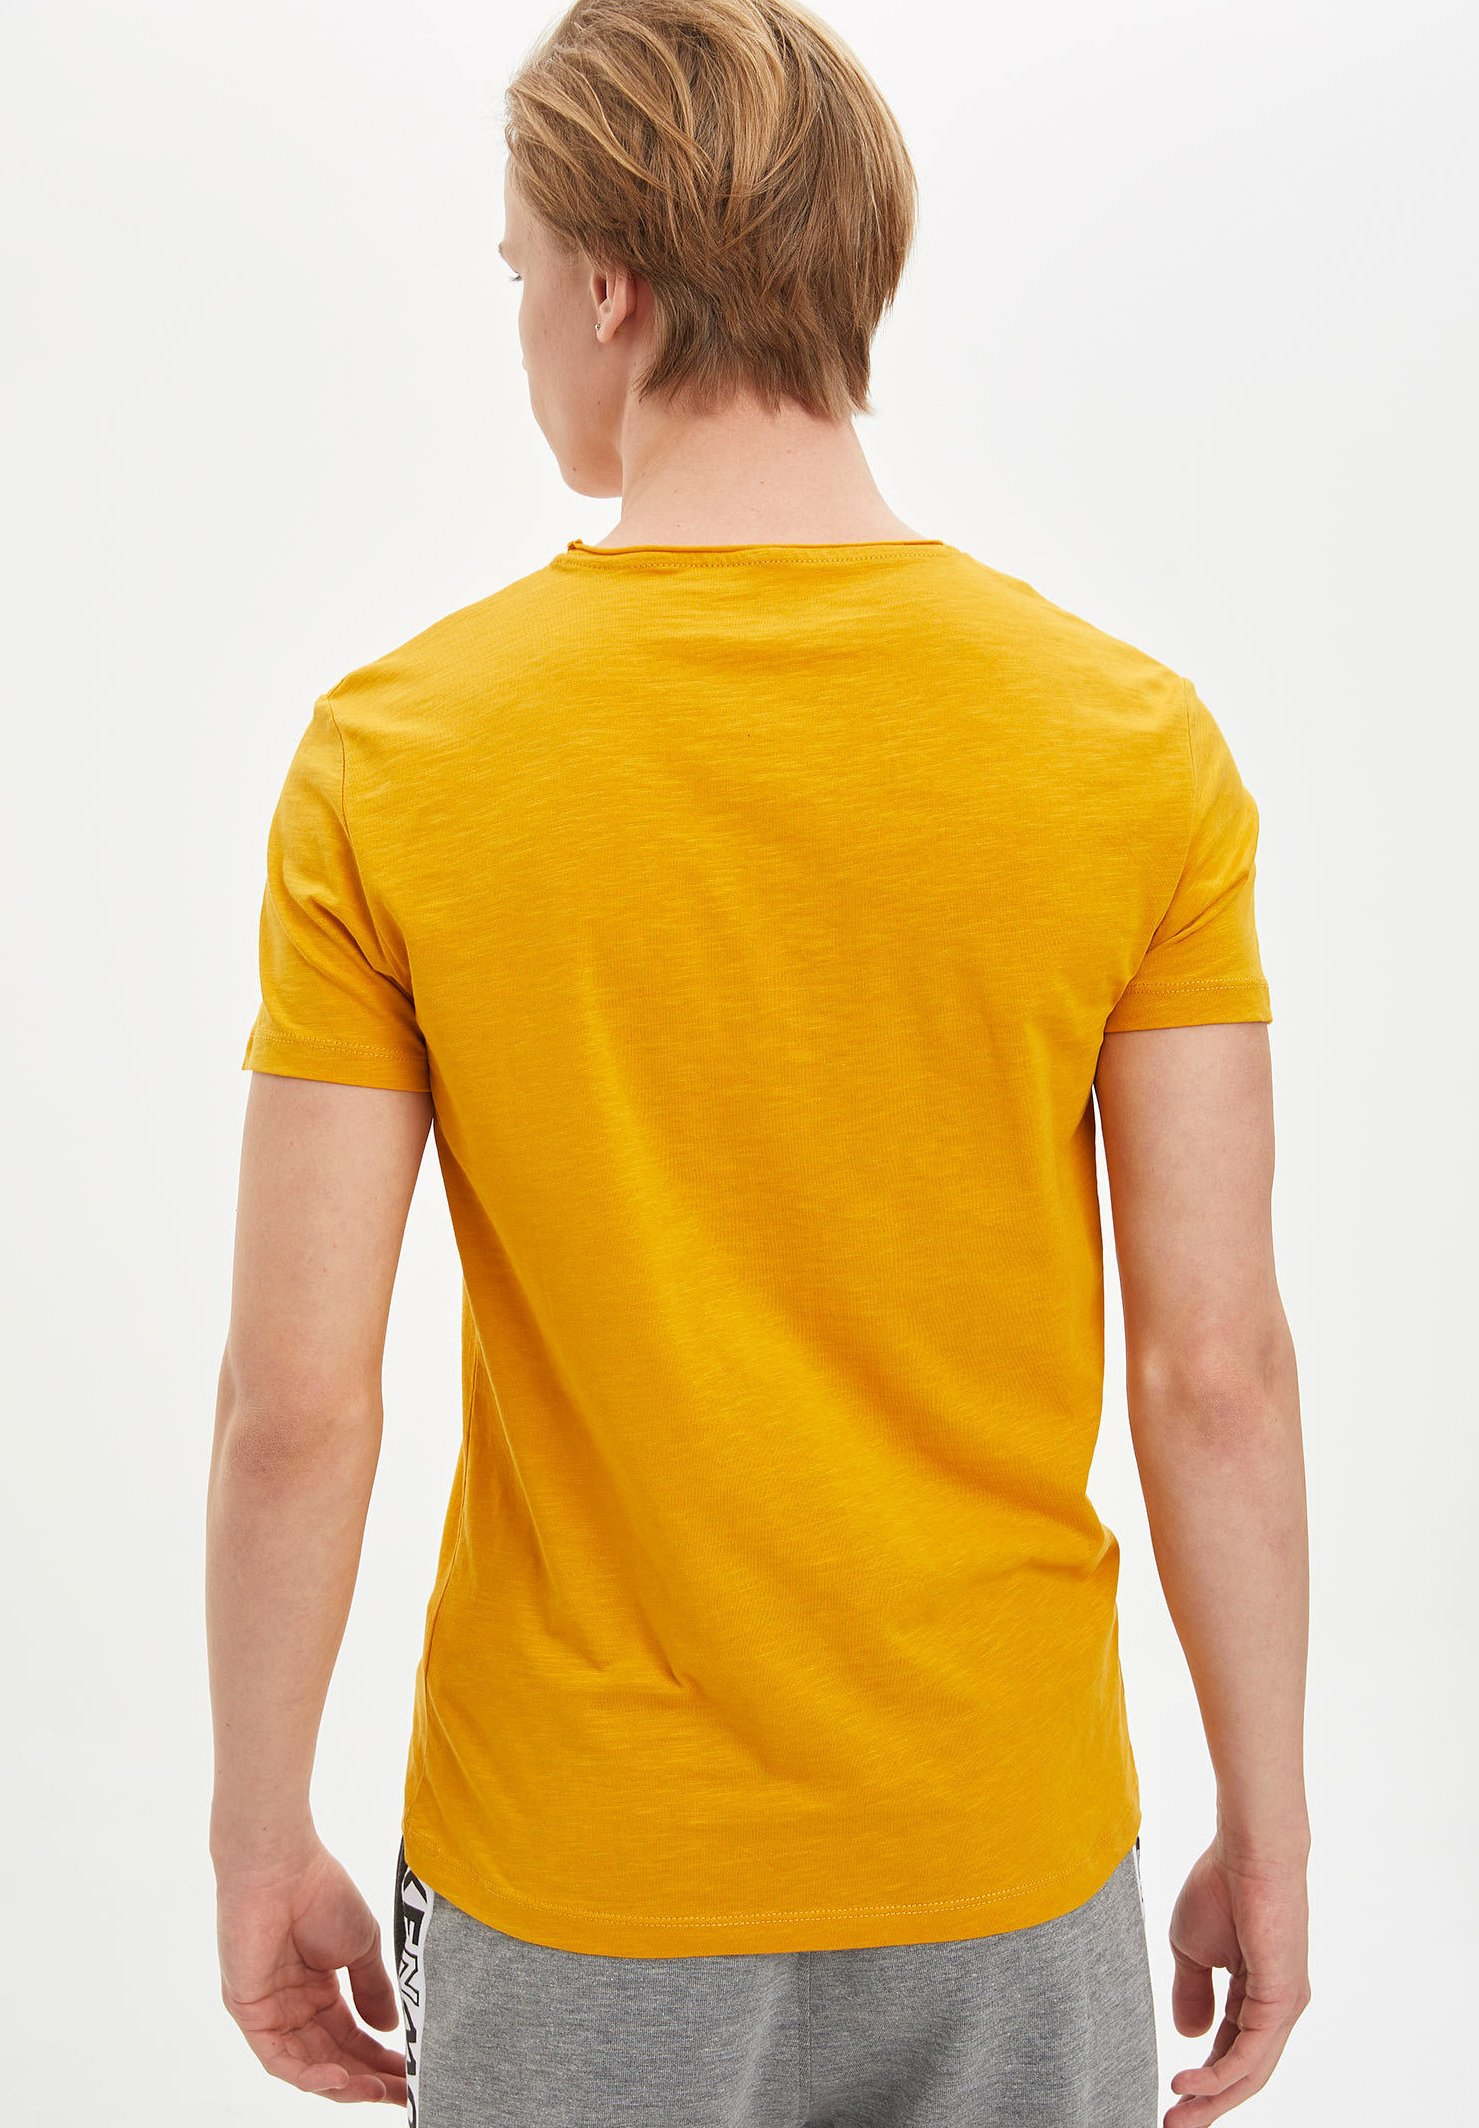 DeFacto Basic T-shirt - yellow 7Y6dx